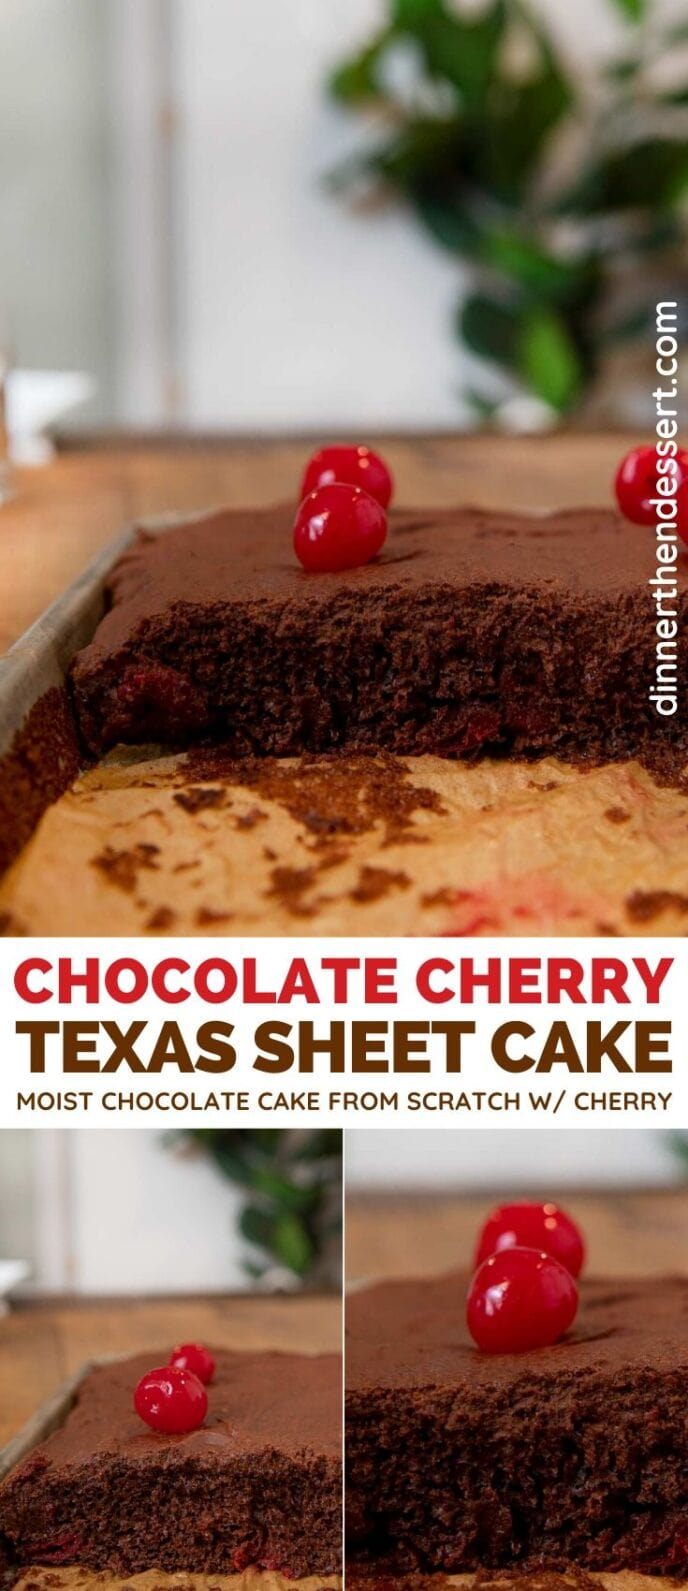 Chocolate Cherry Texas Sheet Cake collage